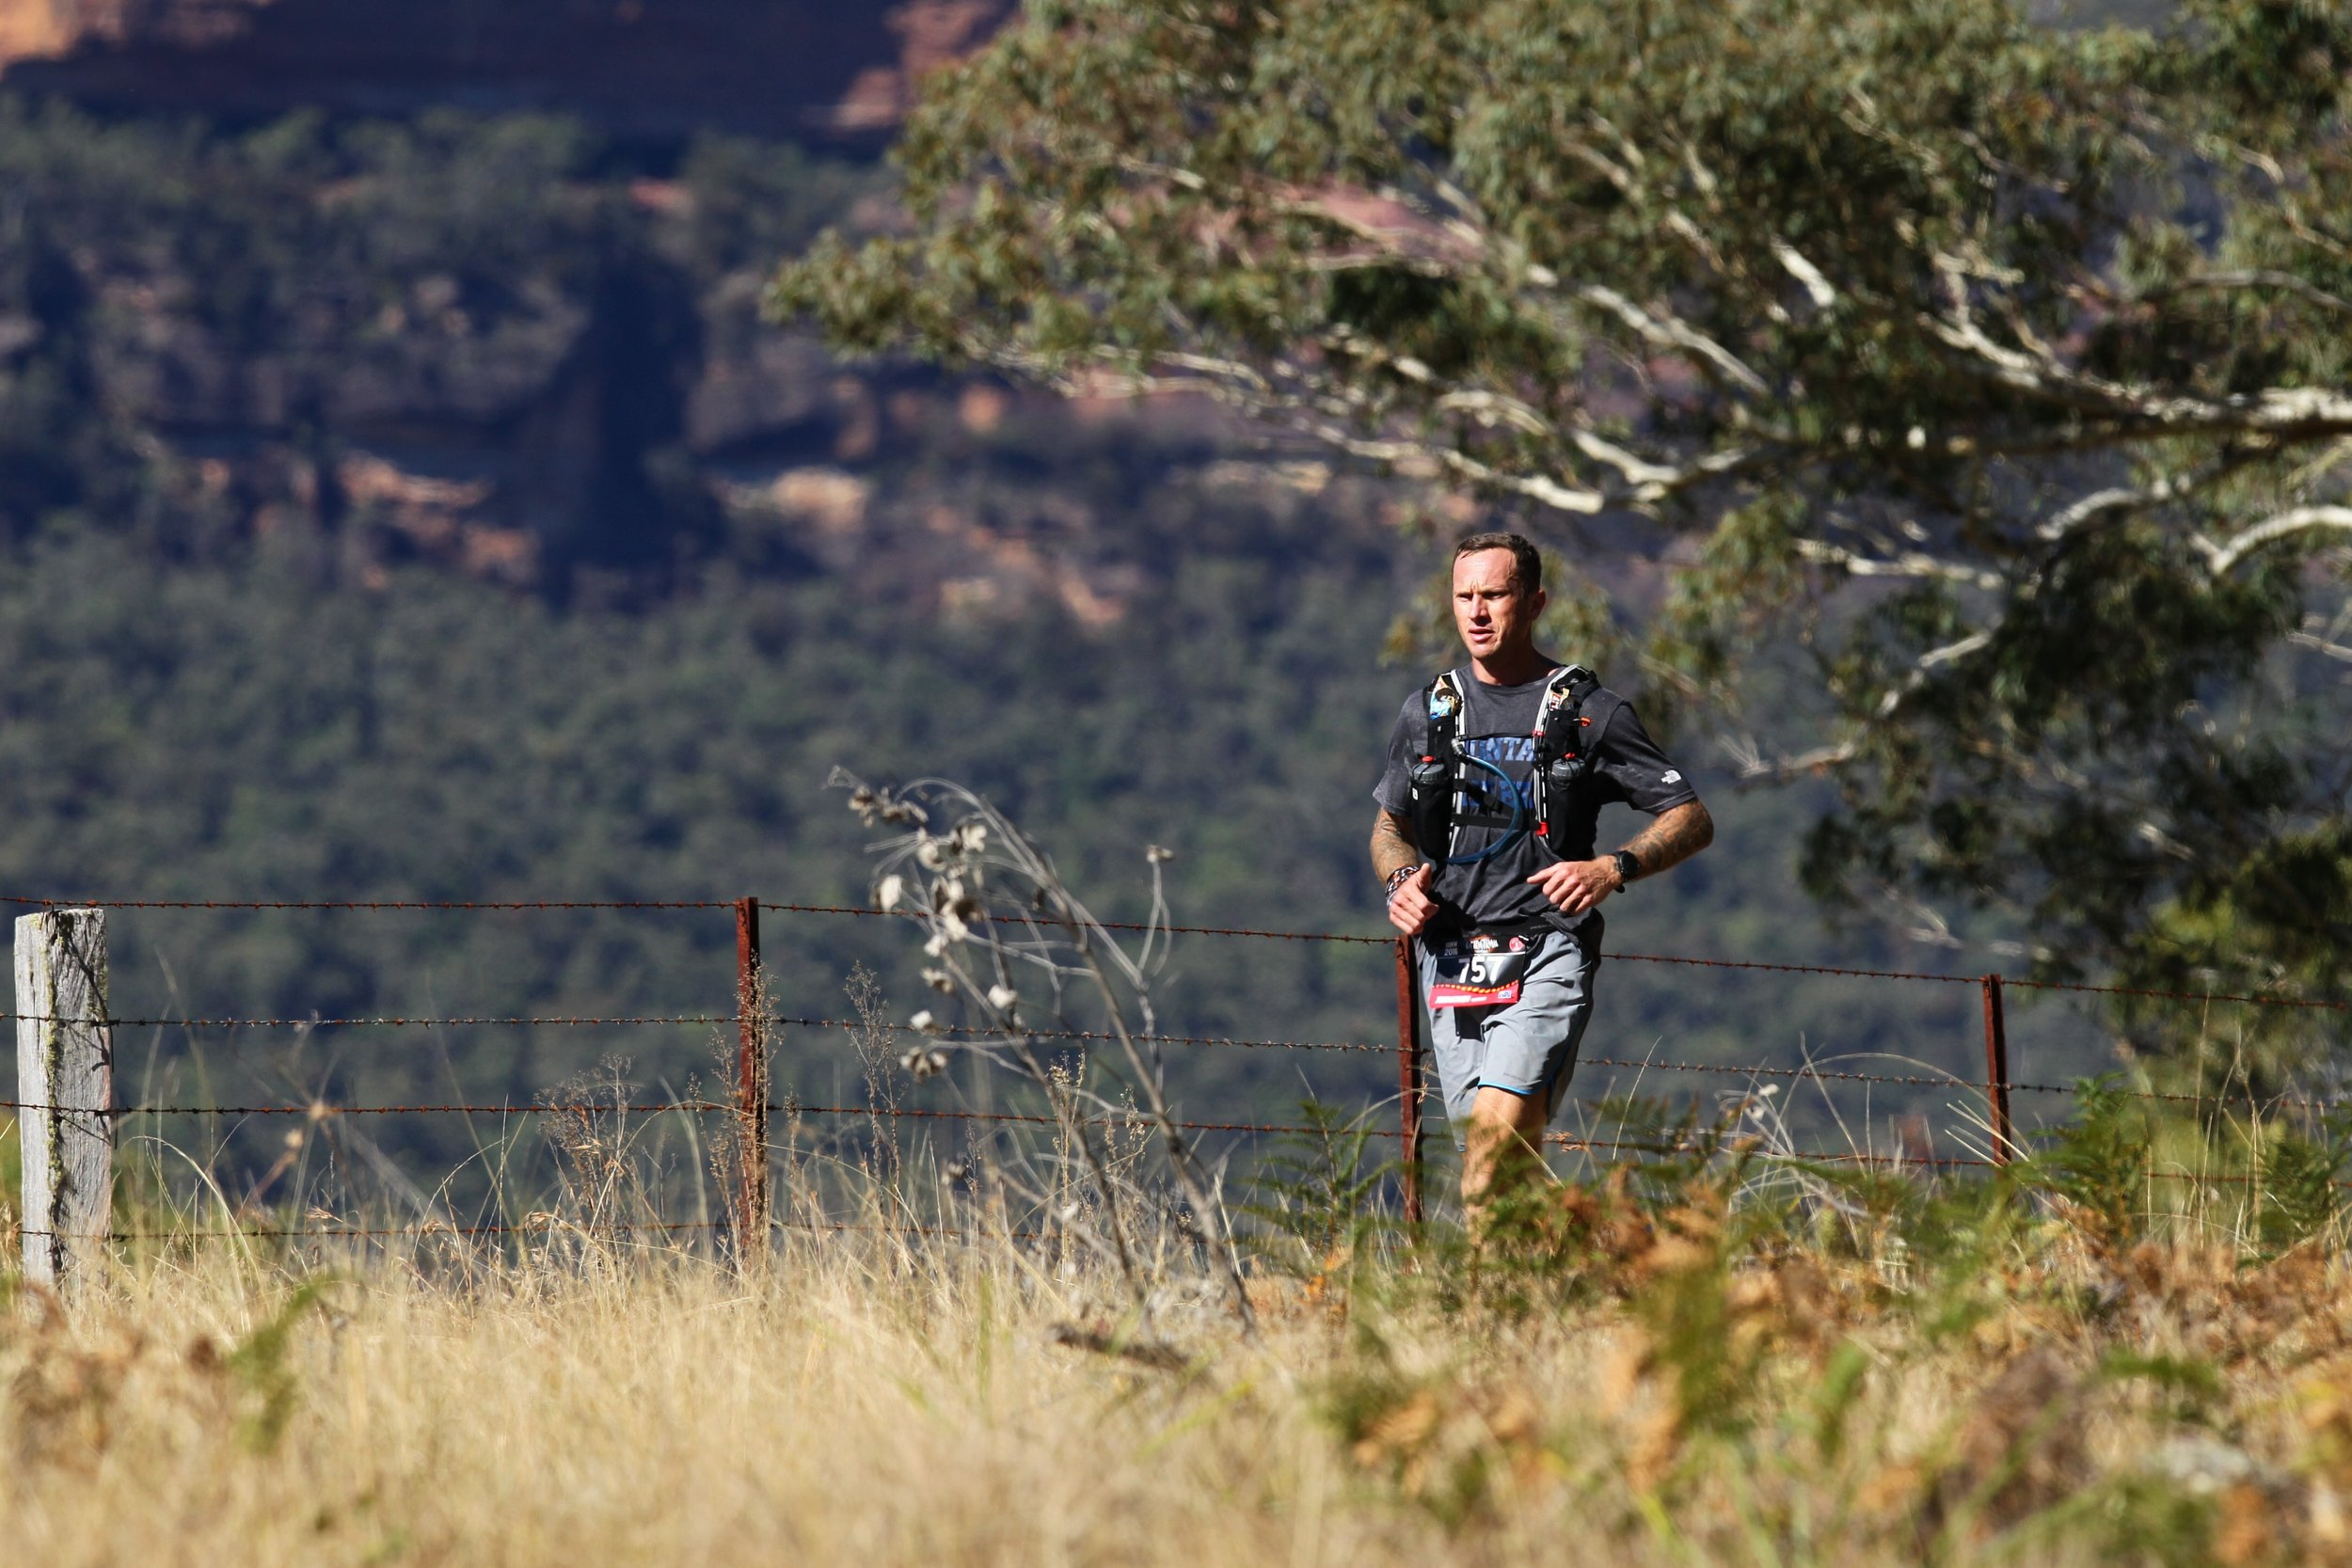 Picture: Ultra Trail Australia 100